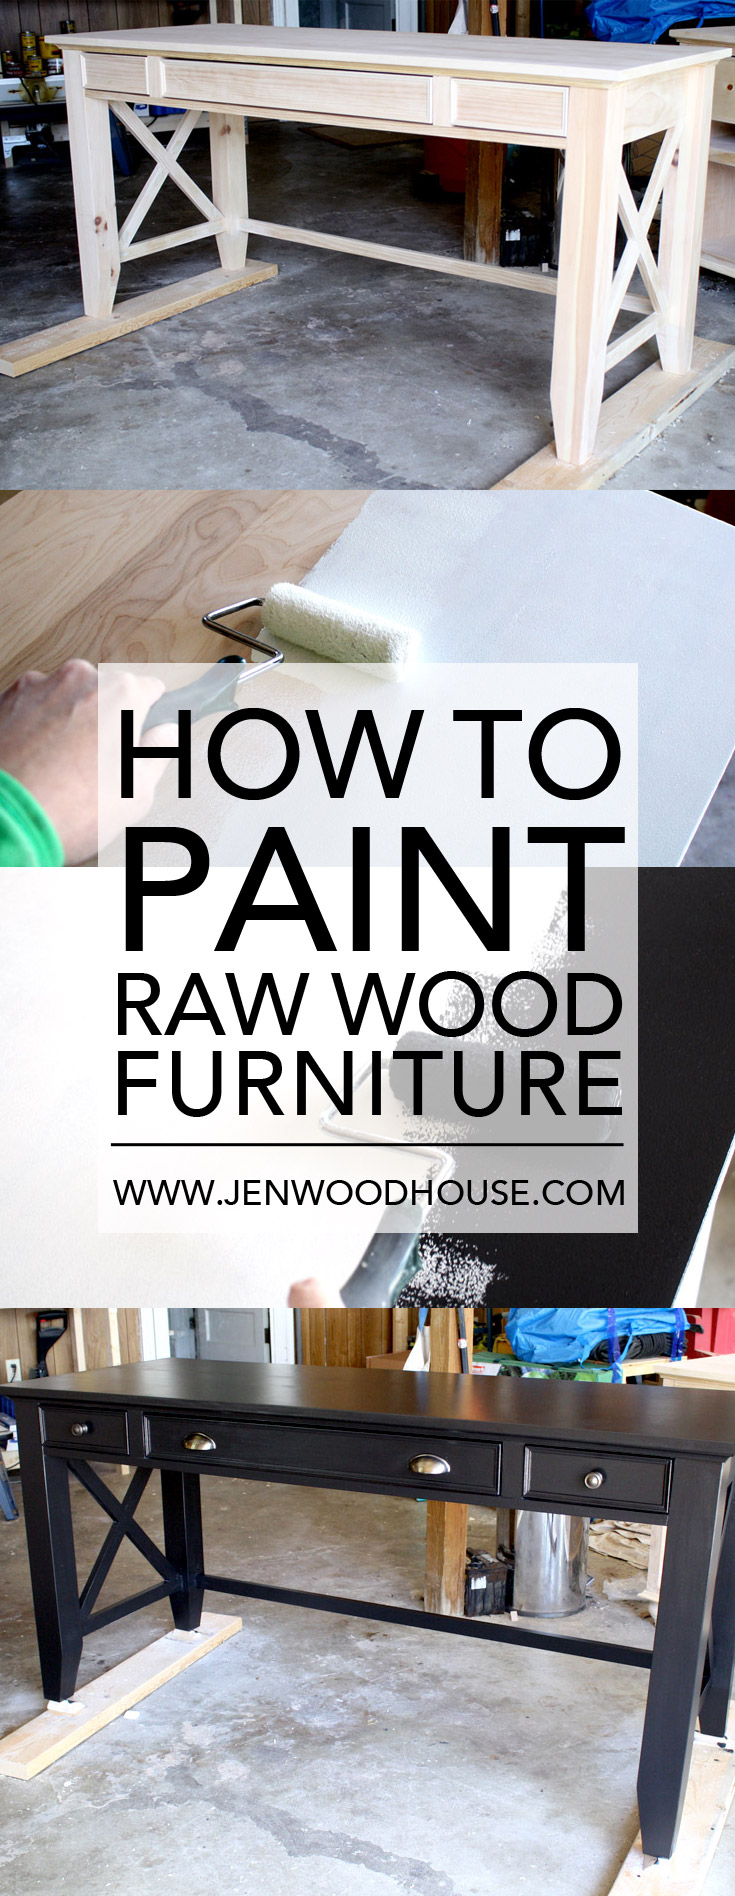 In-depth tutorial on how to paint raw wood furniture | www.jenwoodhouse.com